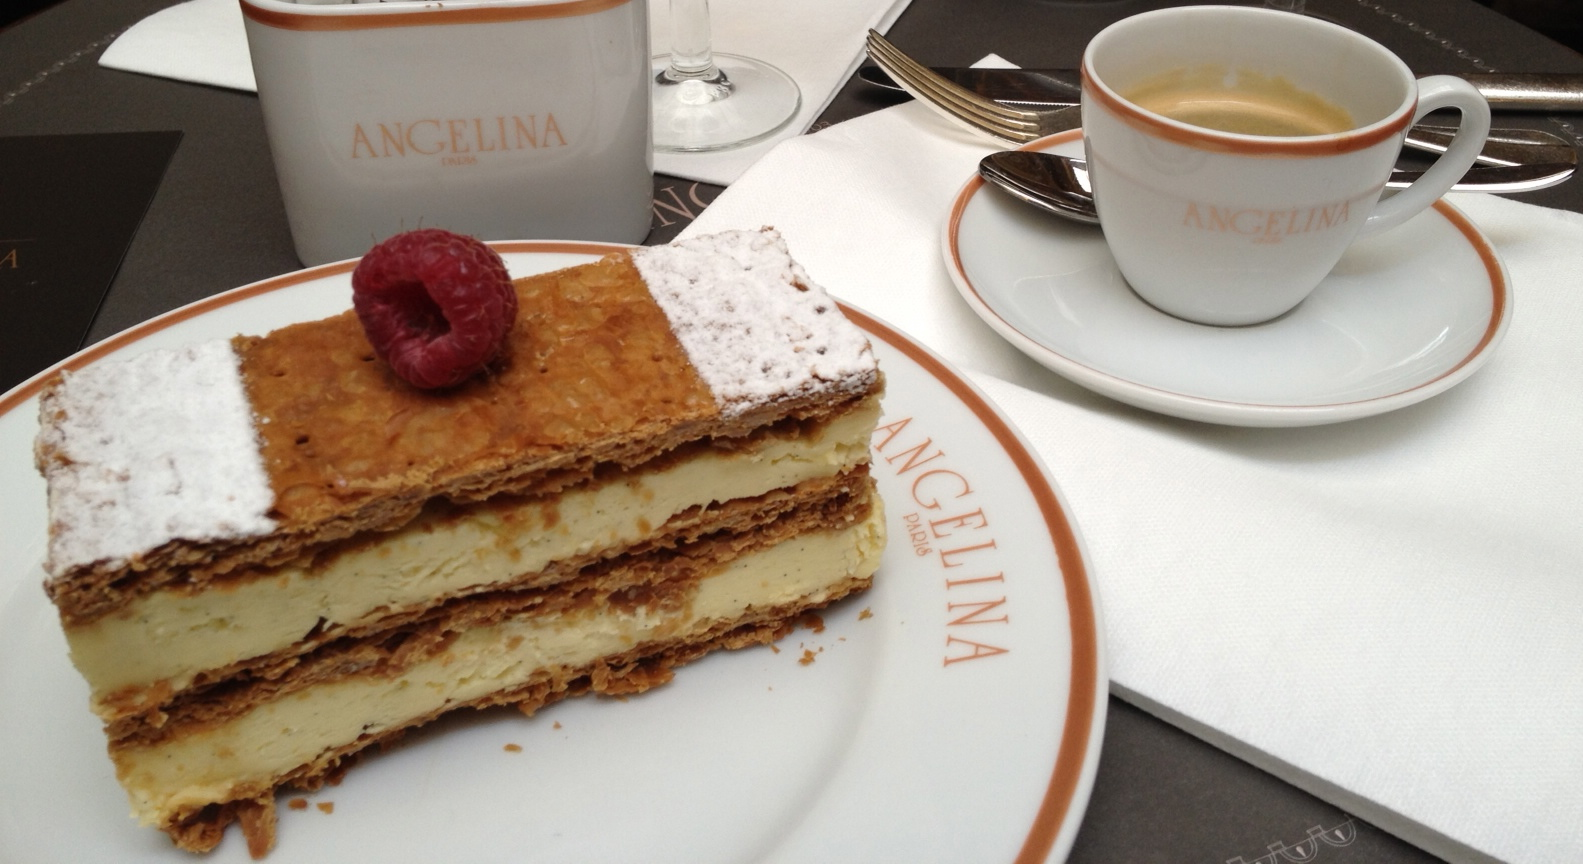 Millefeuille and a cup of espresso at Angelina tea room in Paris